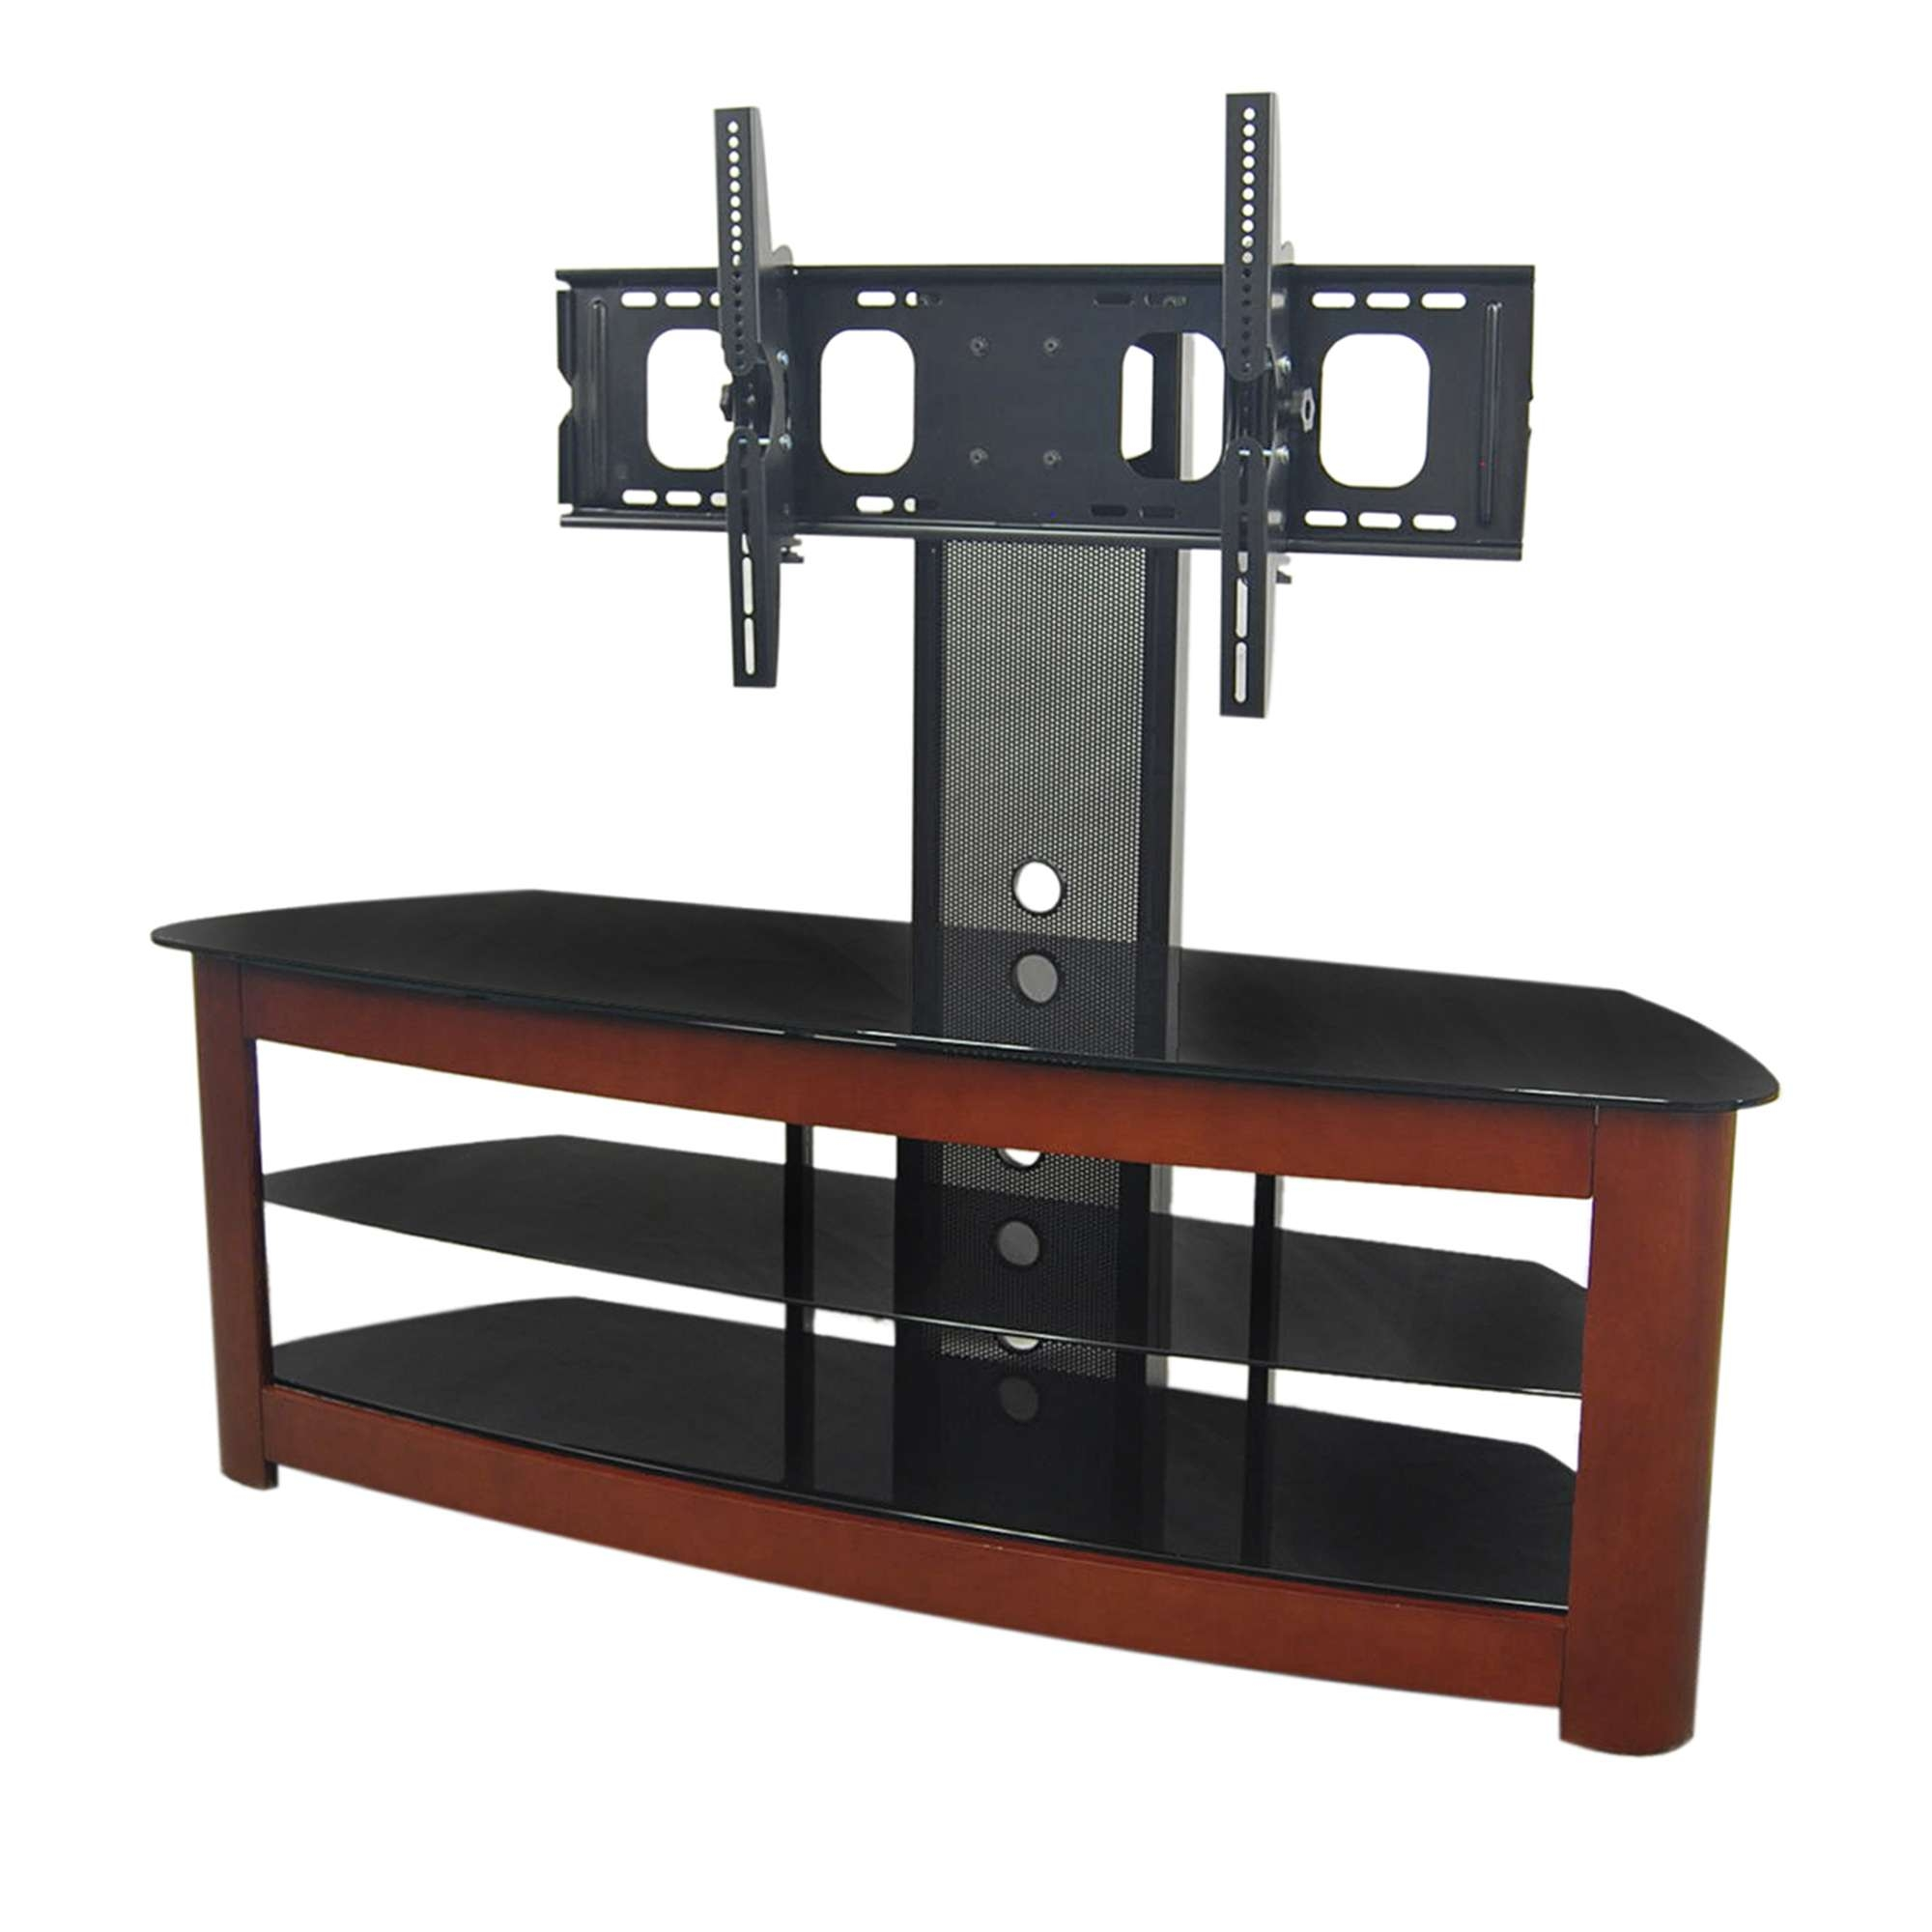 Amazing Bjs Tv Stand 54 In Home Remodel Ideas With Bjs Tv Stand Throughout Bjs Tv Stands (View 1 of 20)